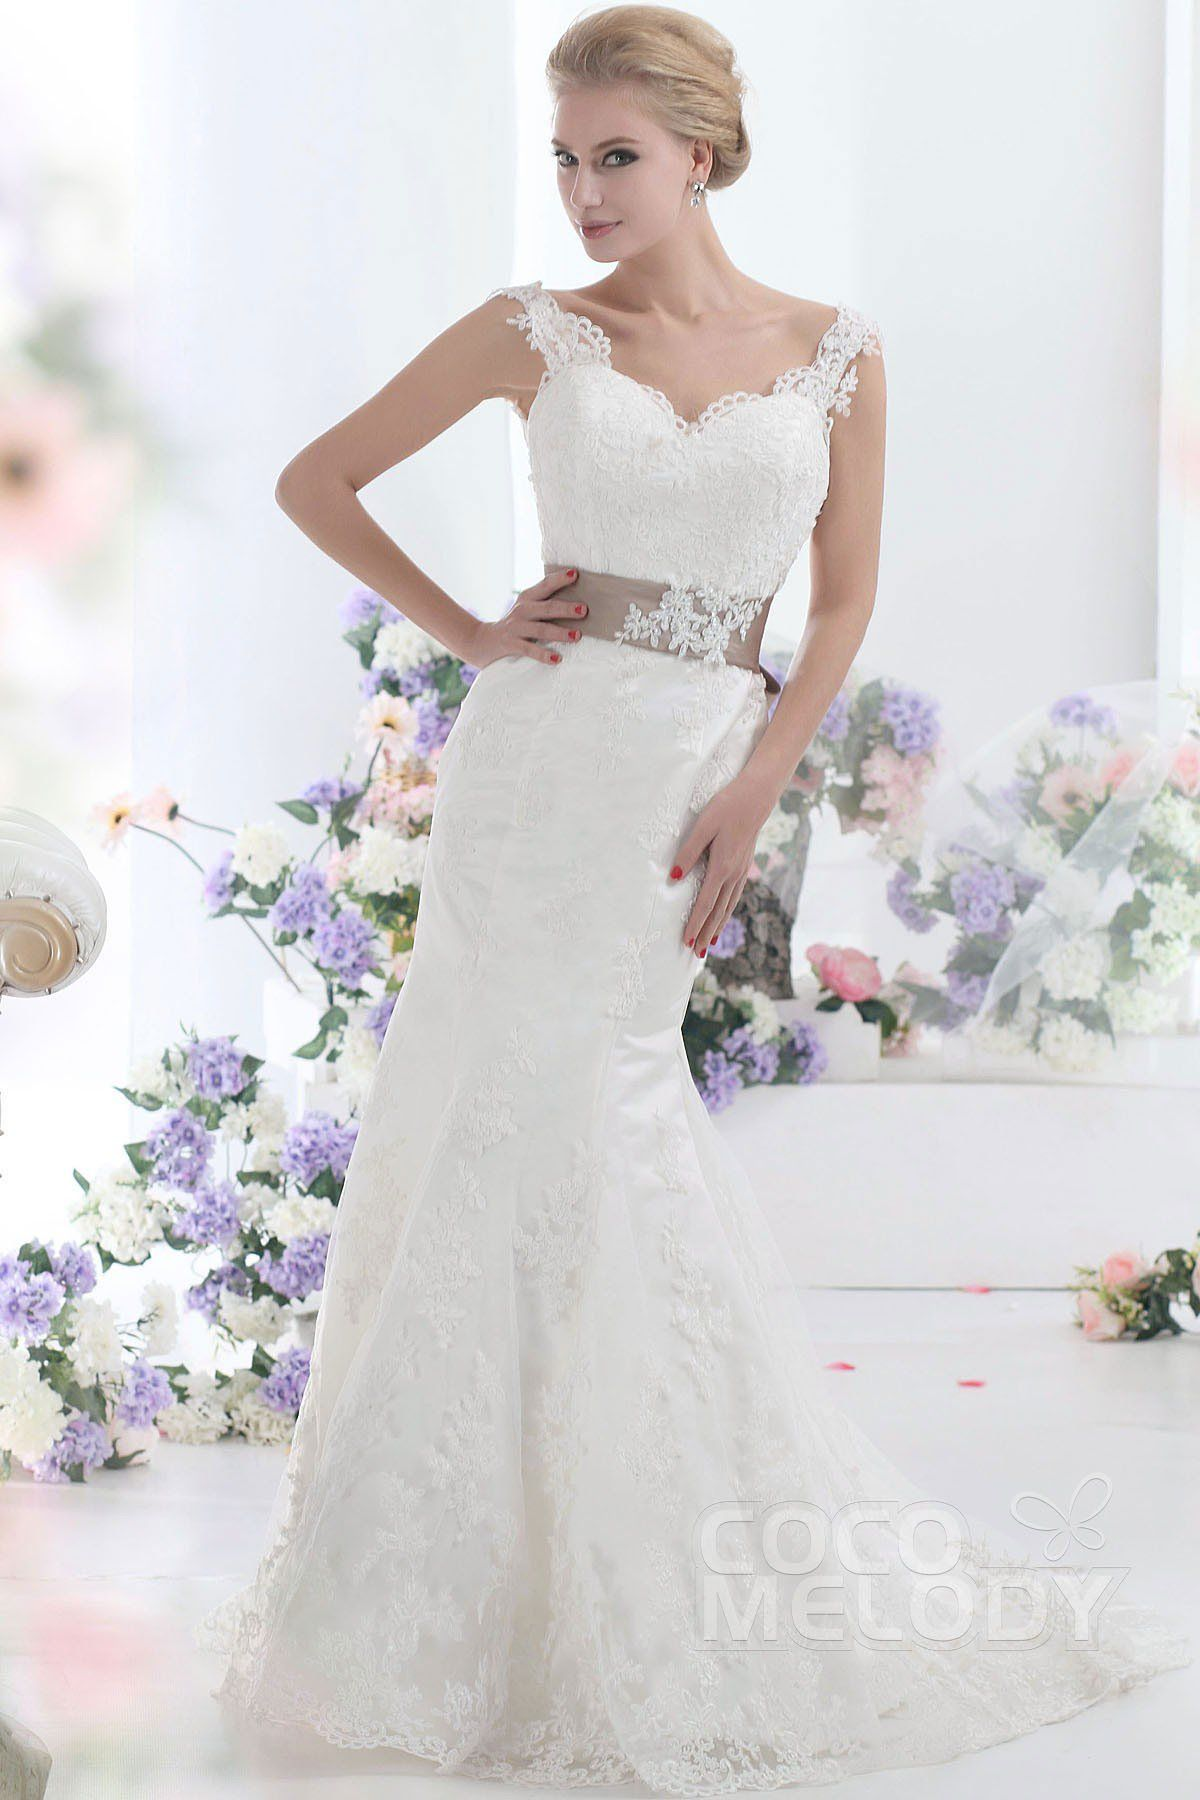 Stylish Trumpet-Mermaid Straps Natural Sweep-Brush Train Tulle and Lace Ivory Sleeveless Open Back Wedding Dress with Appliques Beading and Sashes CWVT13002